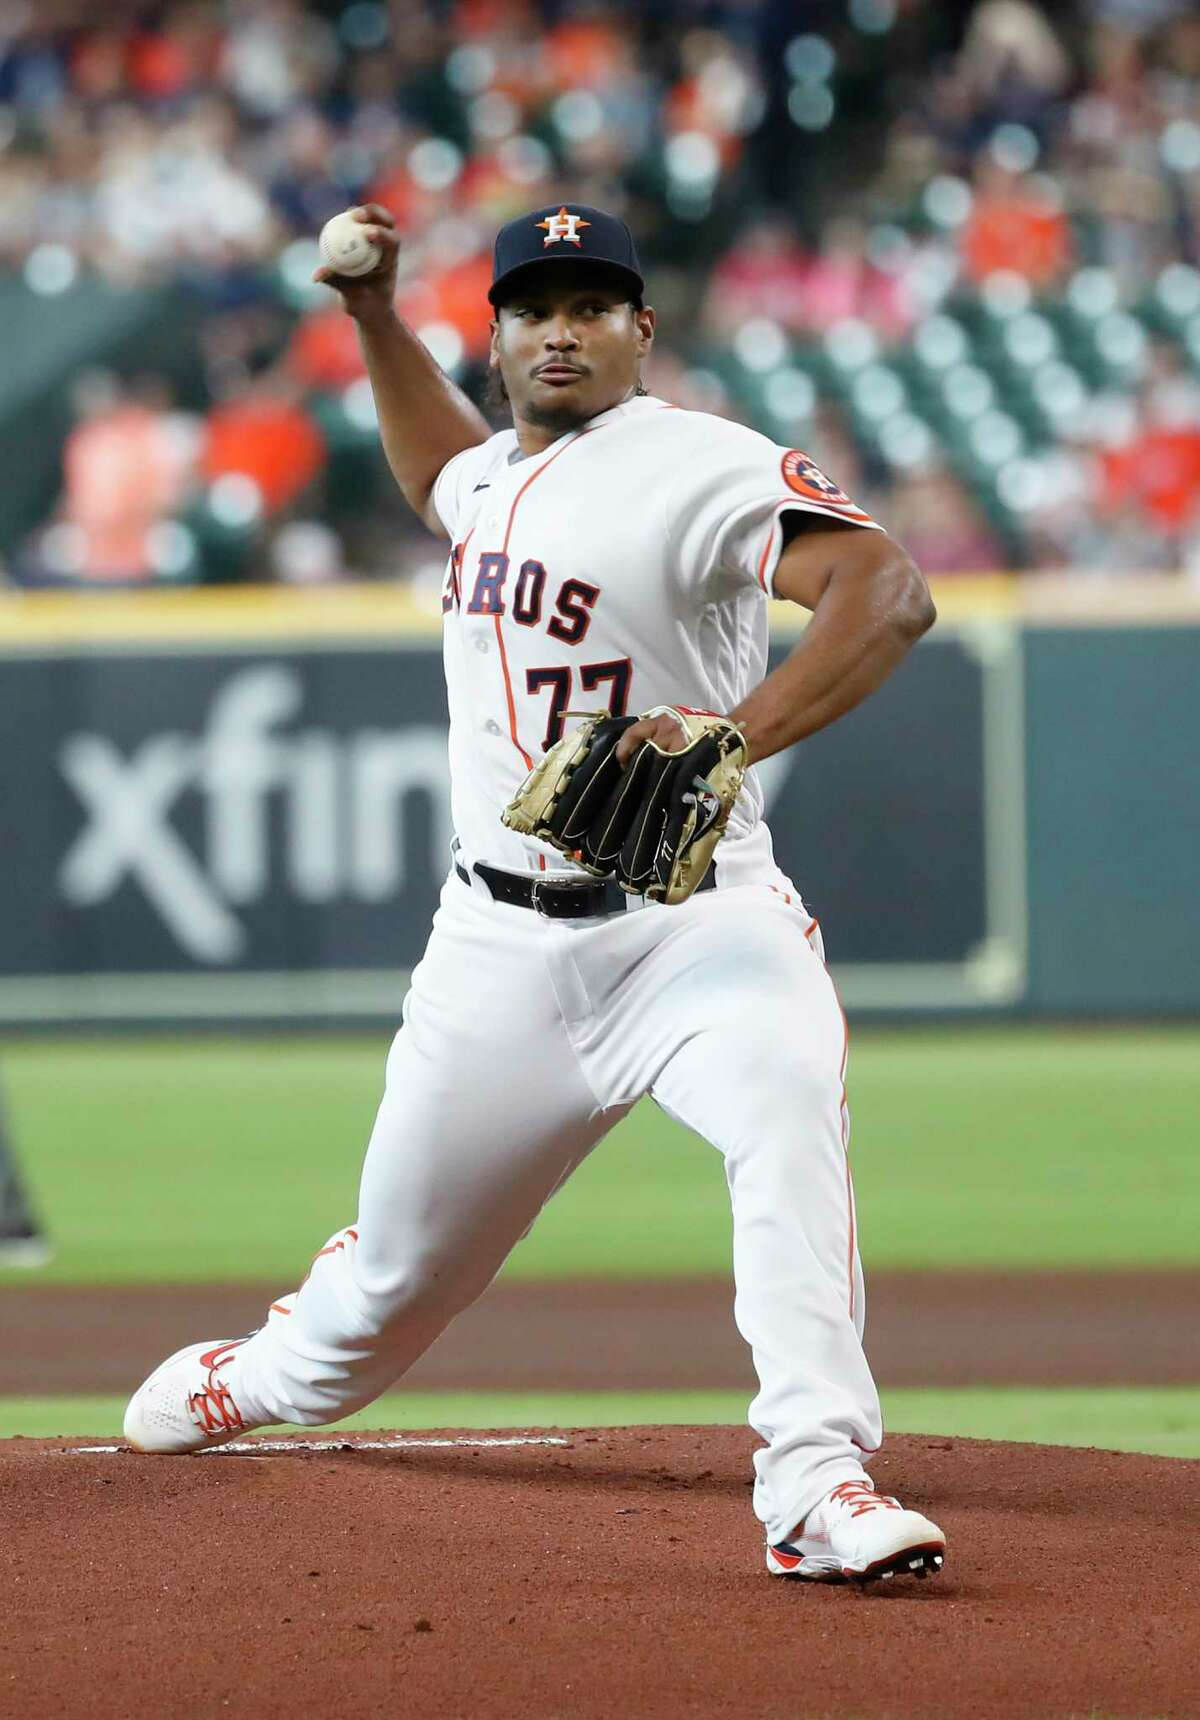 Houston Astros starting pitcher Luis Garcia (77) pitches during the first inning of an MLB baseball game at Minute Maid Park, Saturday, August 7, 2021, in Houston.